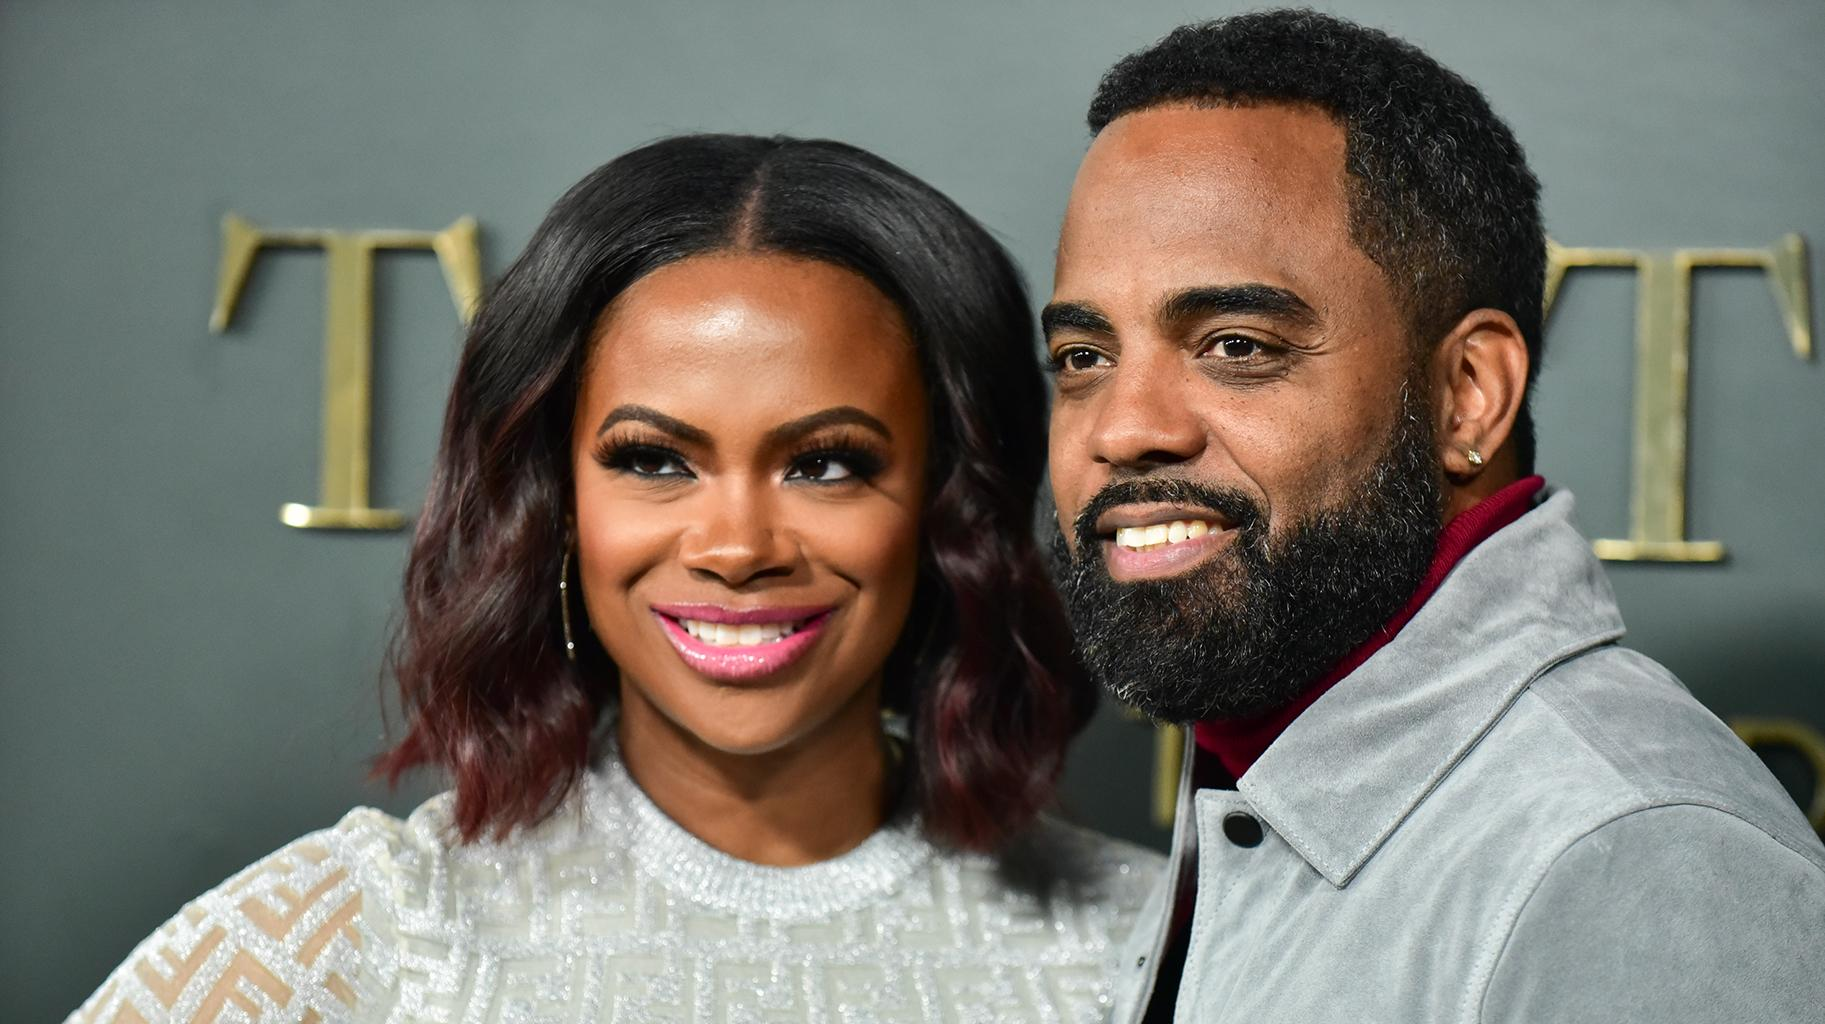 Kandi Burruss Shares A Racy Video Ahead Of Valentines Day - Check Her Out Dropping Her Clothes